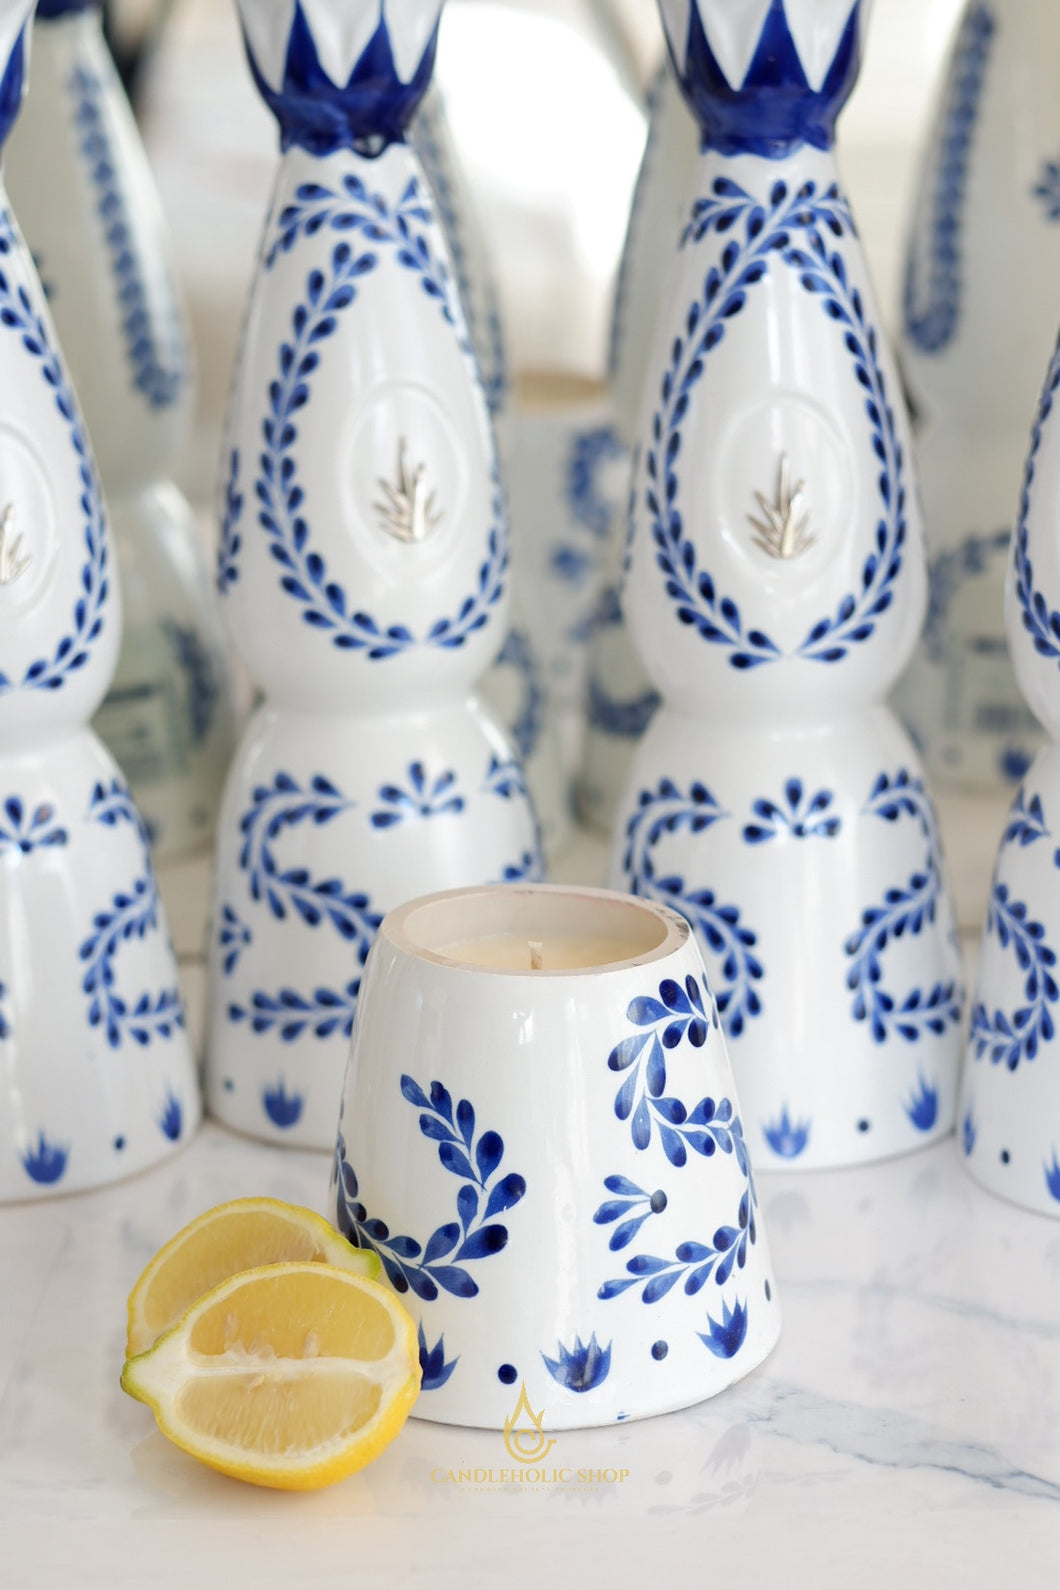 azul candle by candleholic shop